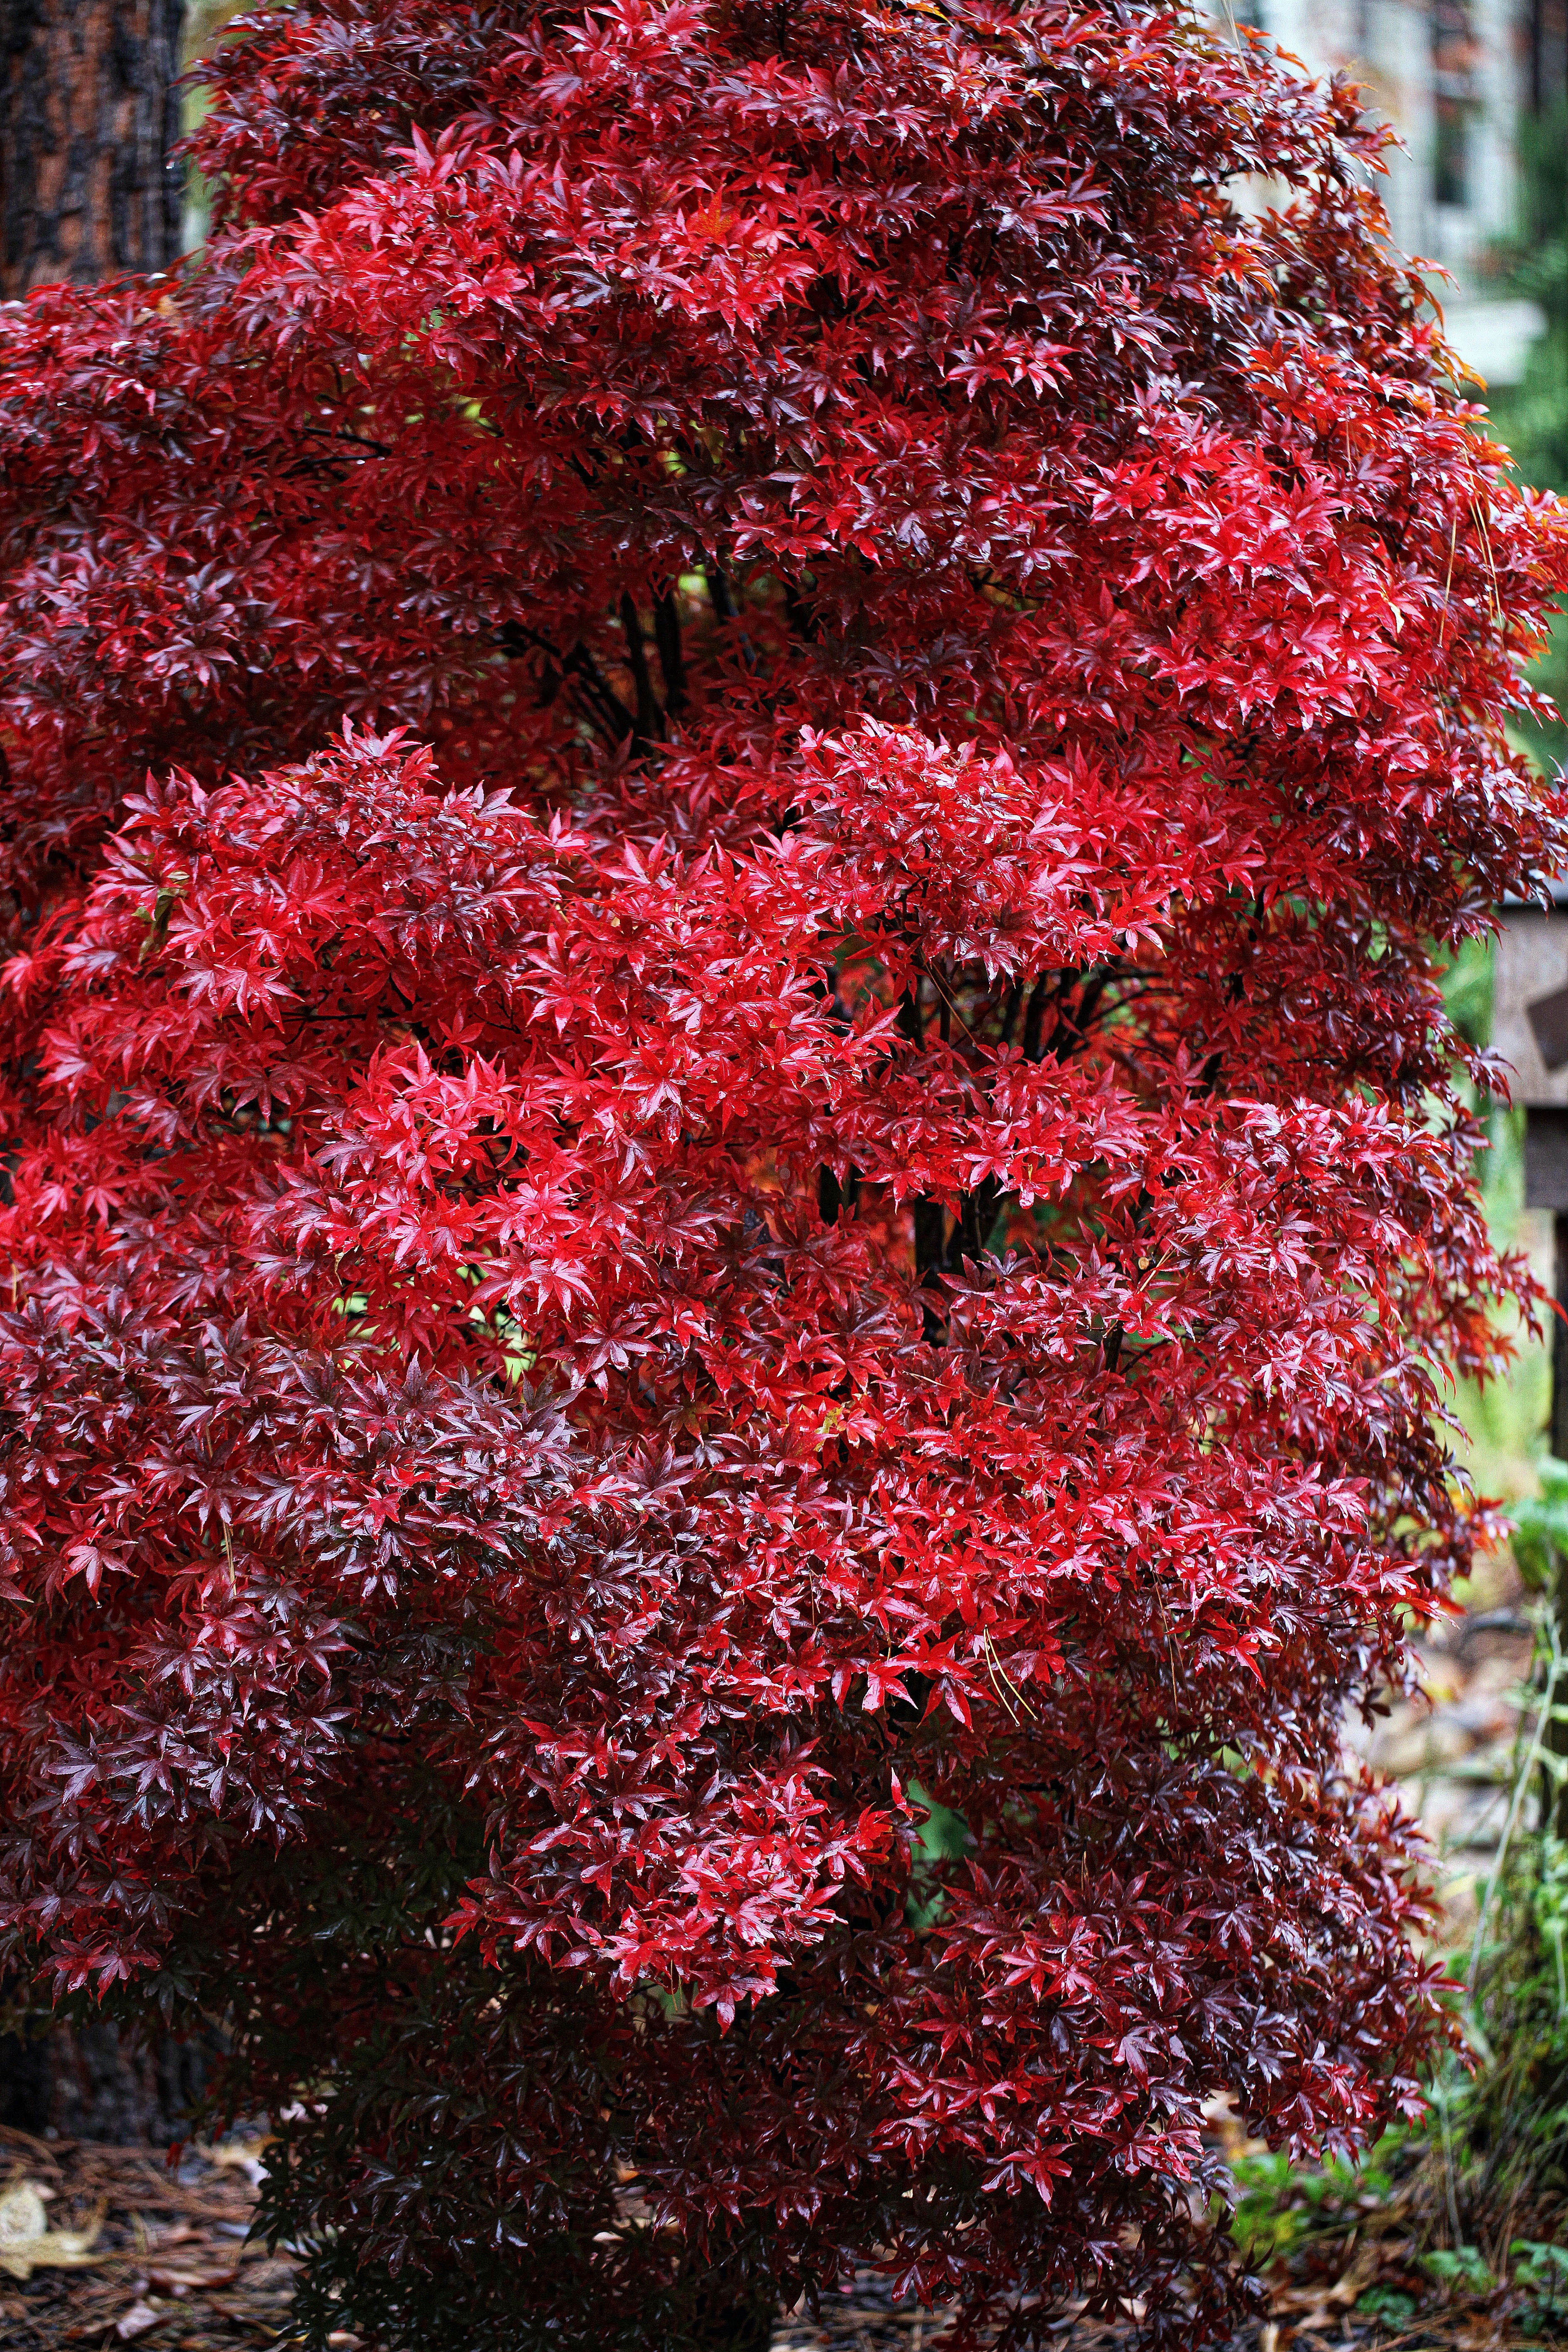 How to care for a fern leaf japanese maple - Fall Foliage